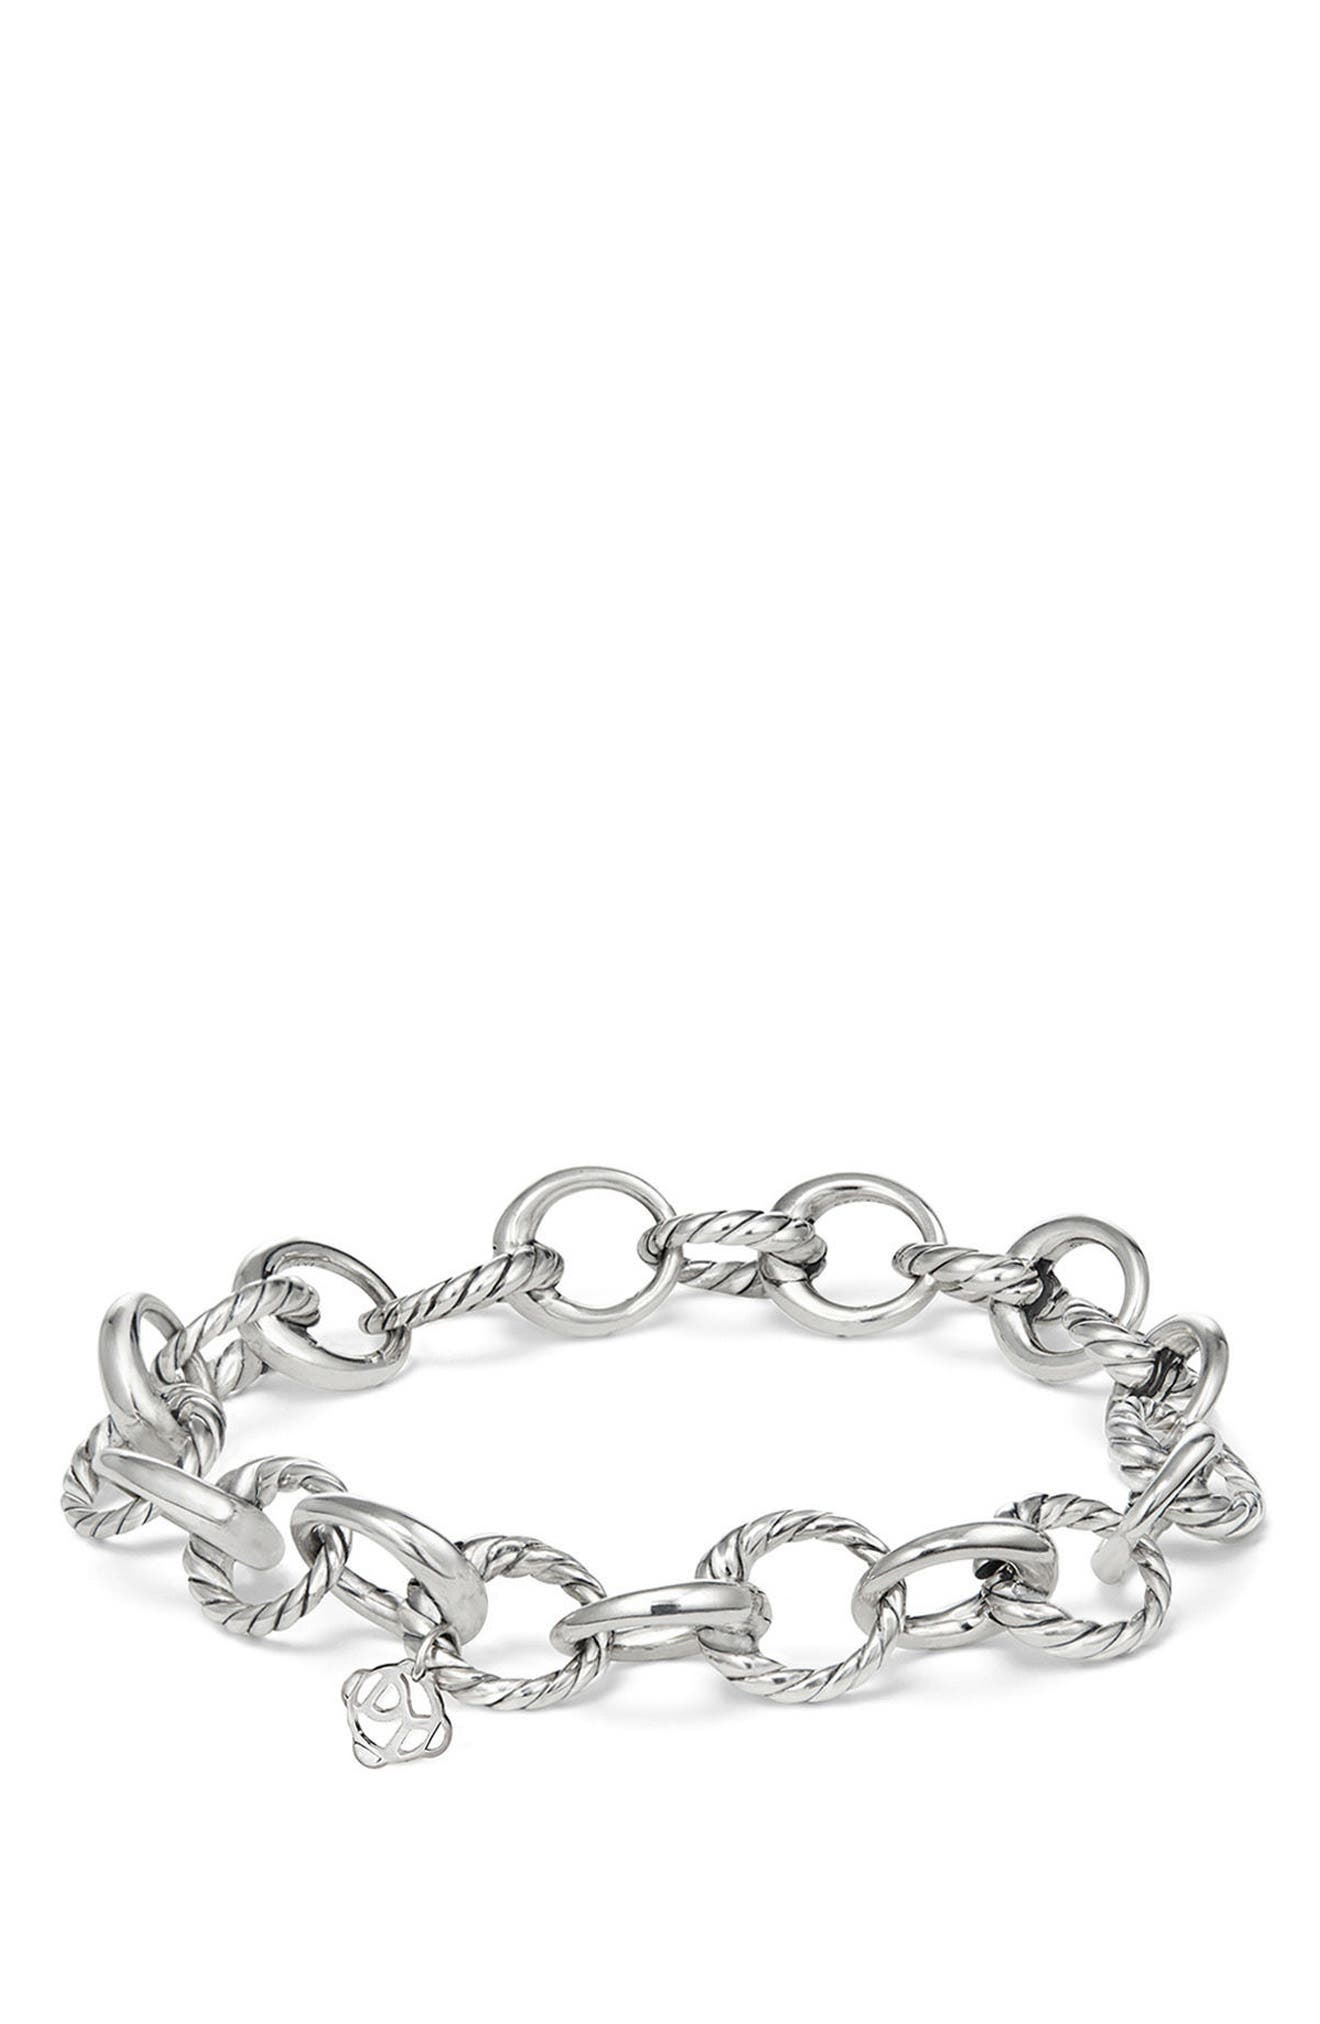 Cable Collectives Oval Link Charm Bracelet,                             Main thumbnail 1, color,                             Silver